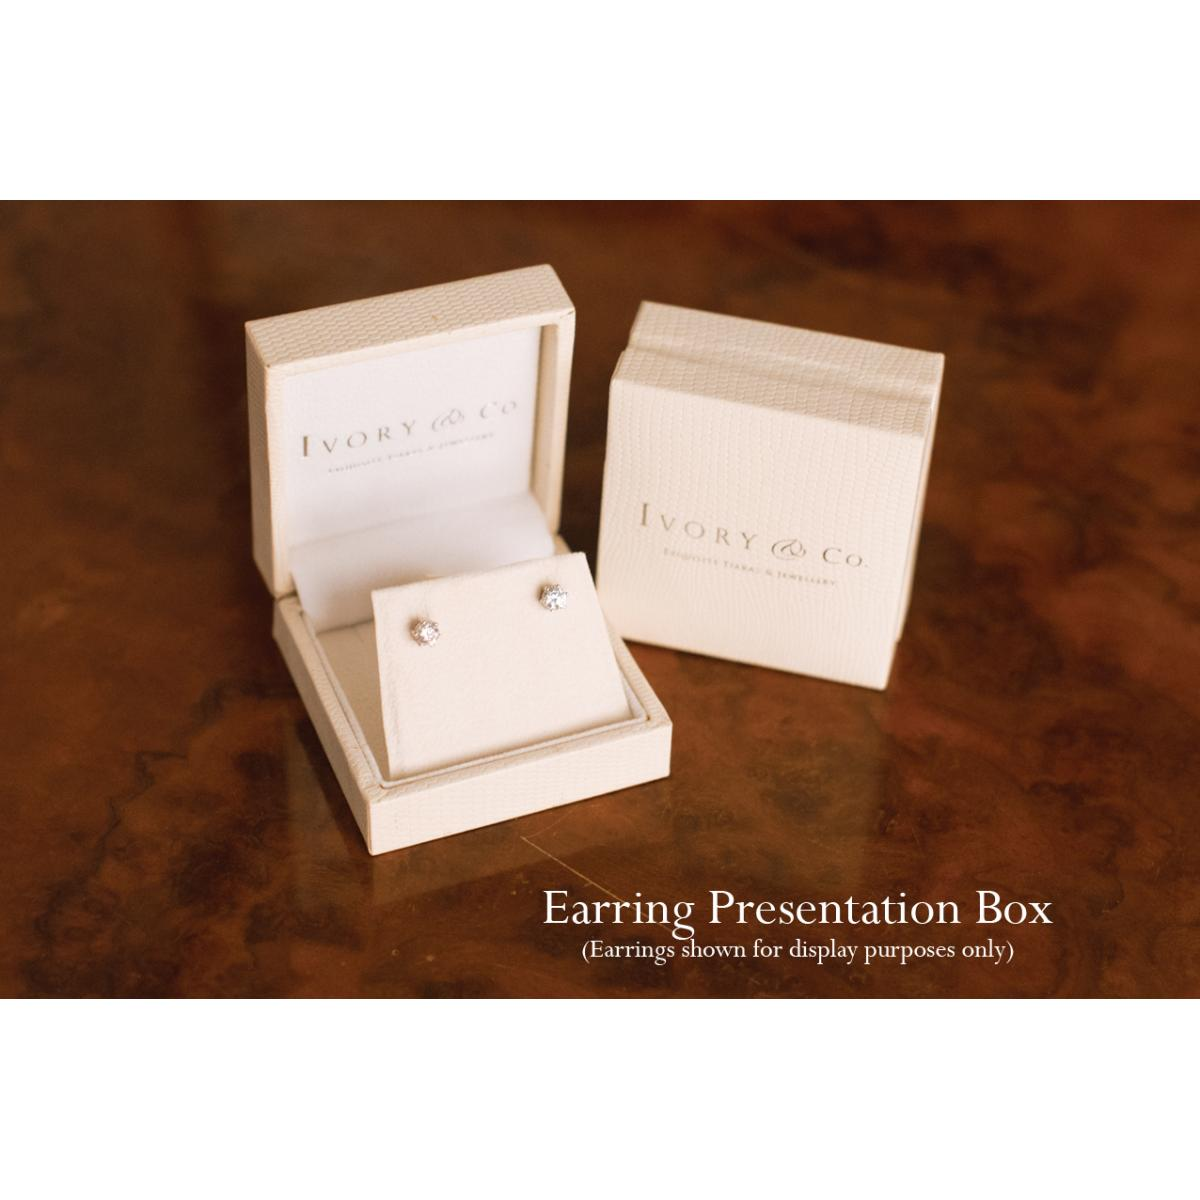 Ivory and Co Madeira Earrings